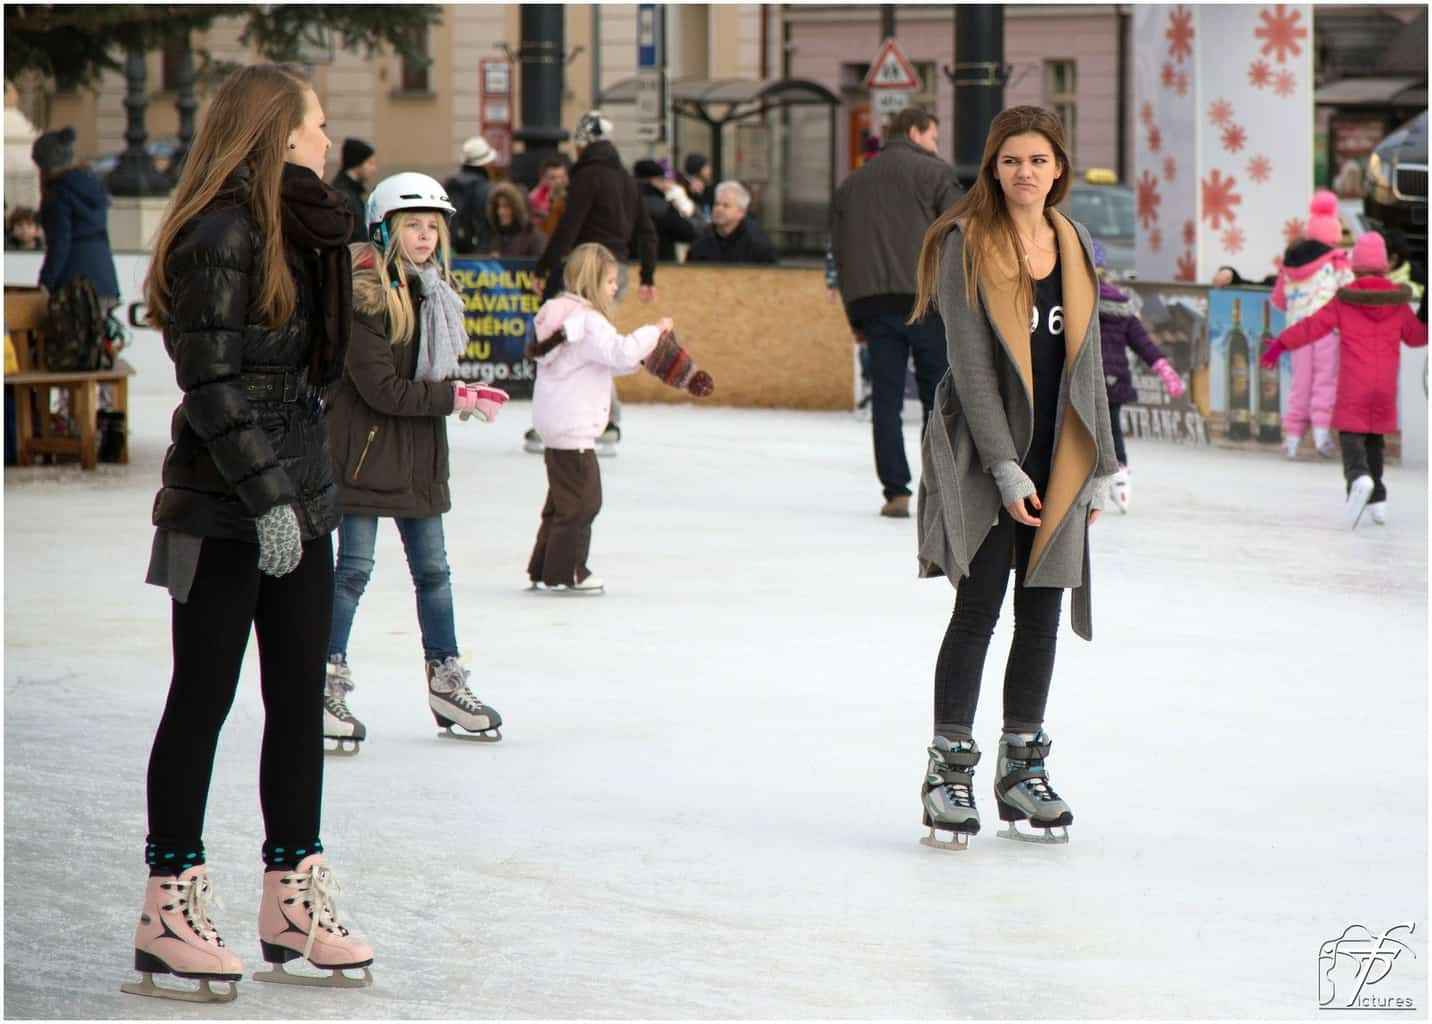 Two girls ice skating one with an upset face